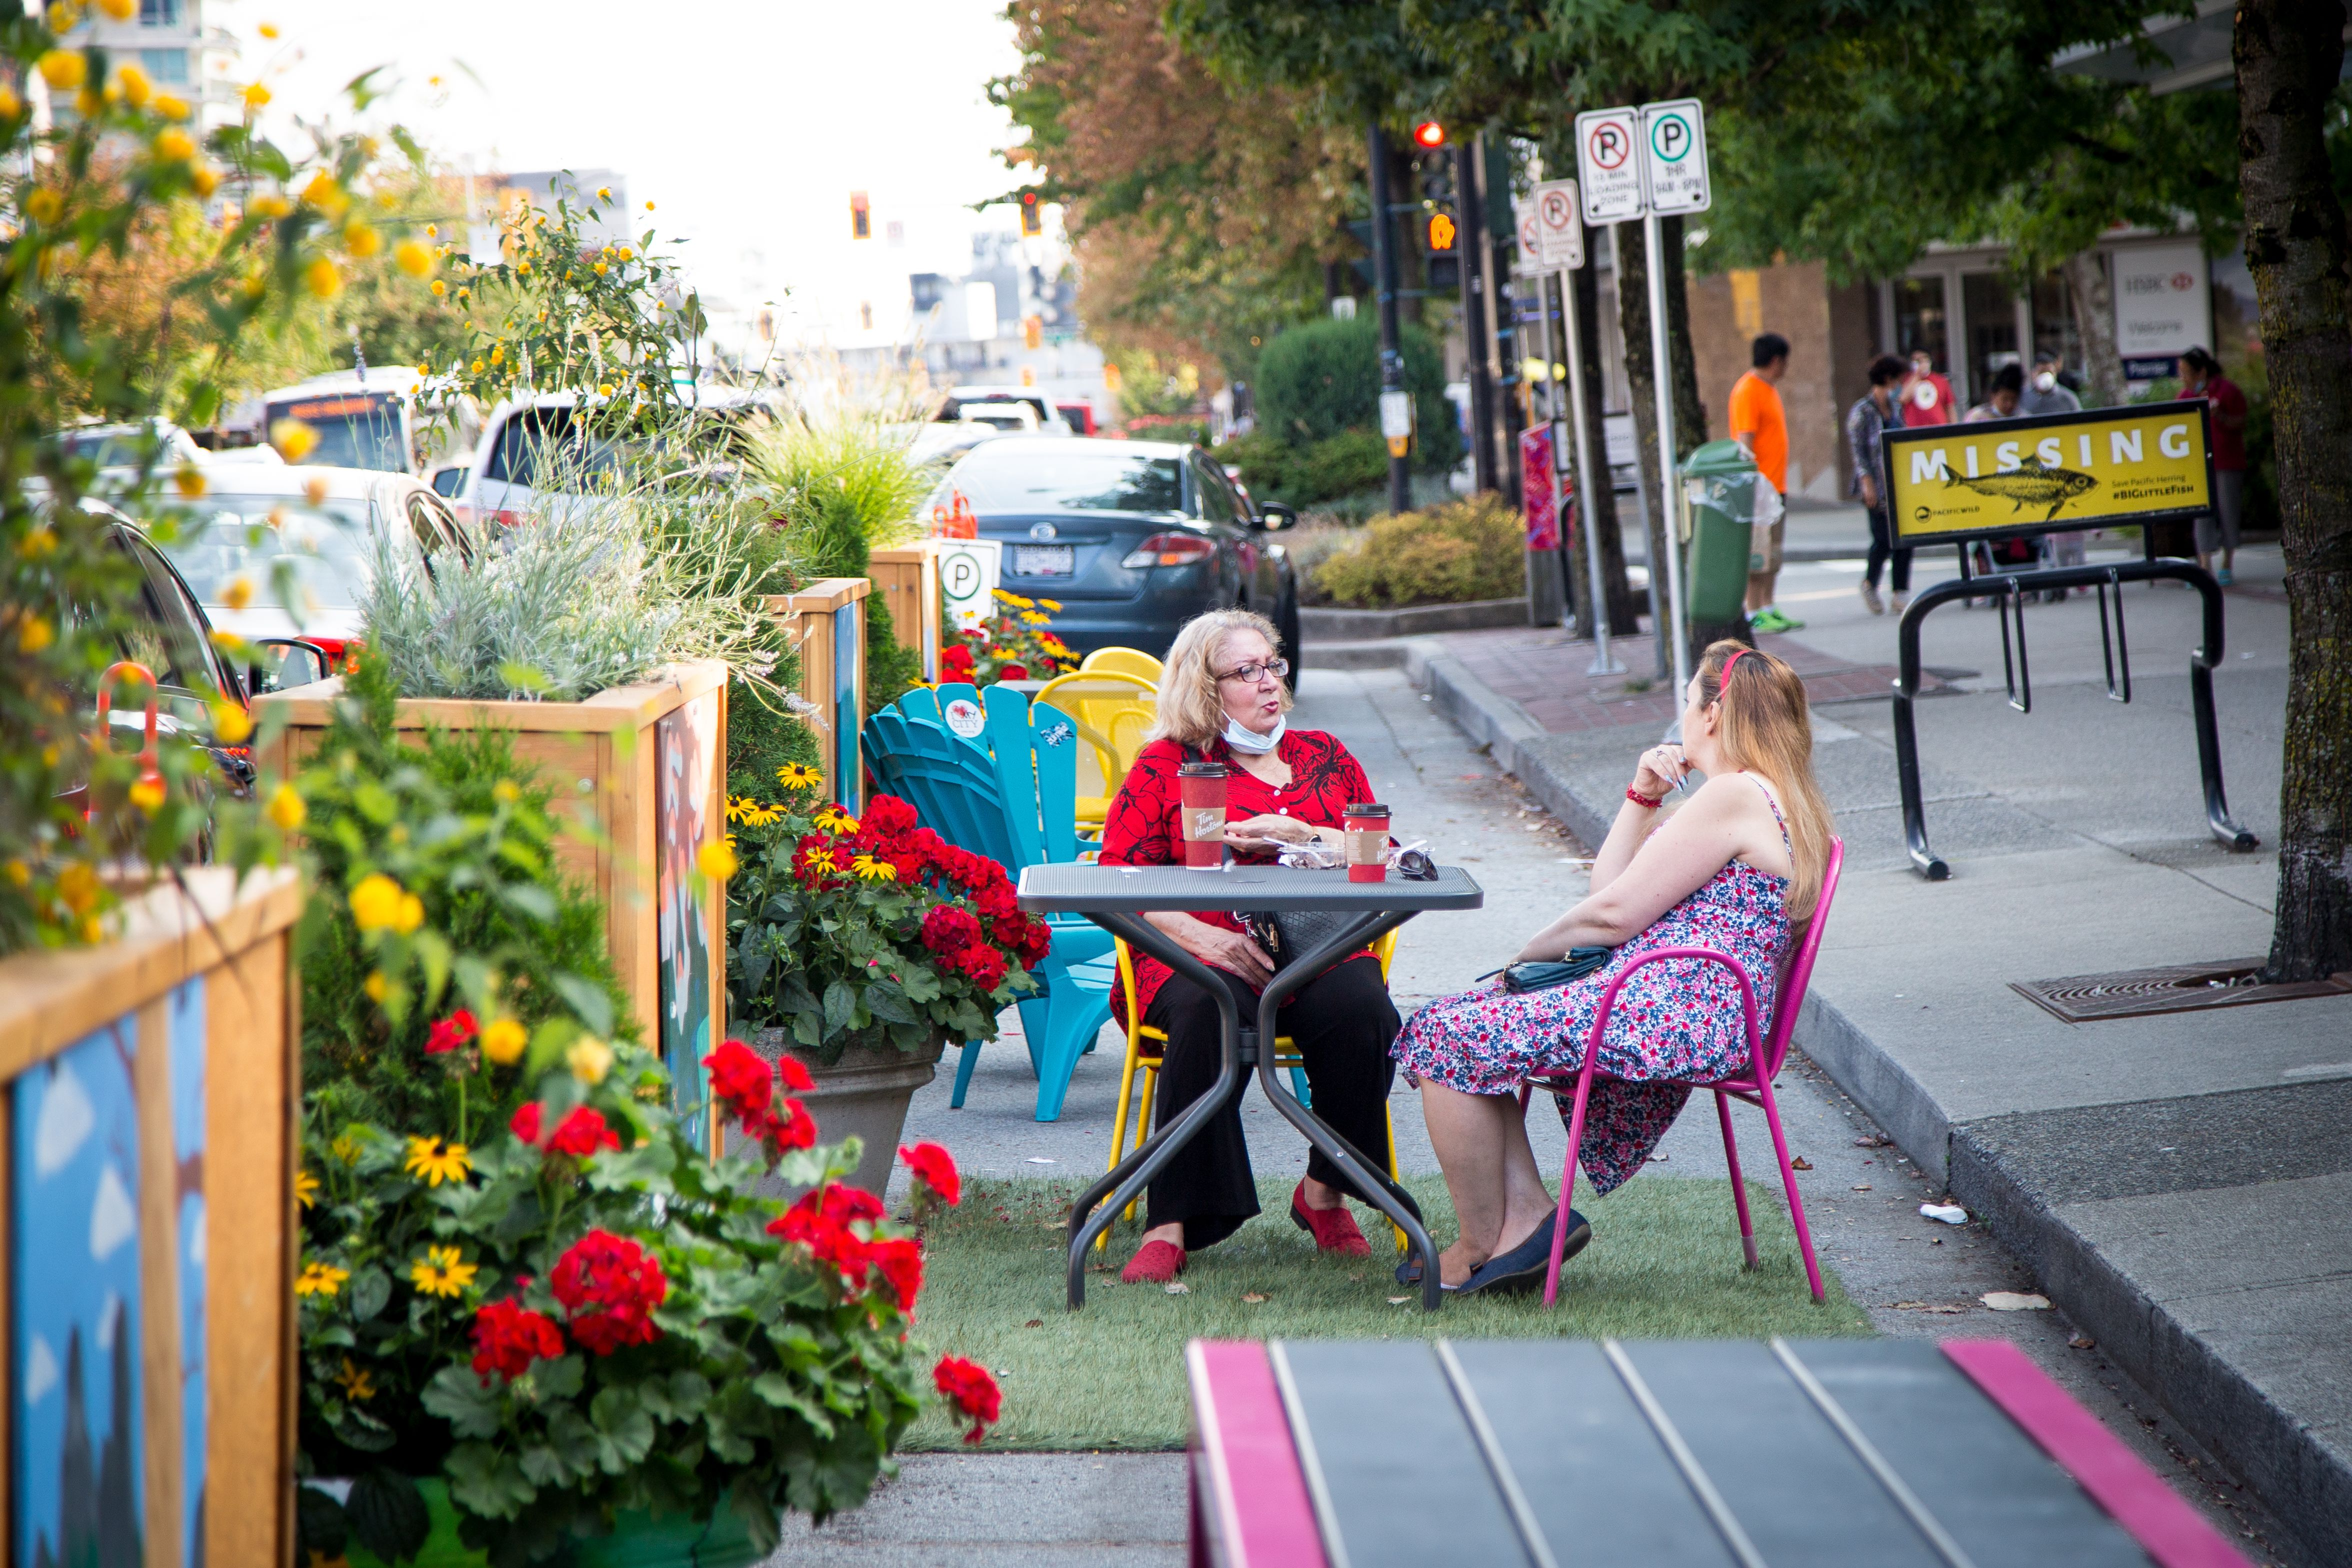 16th West Parklet. Credit: City of North Vancouver